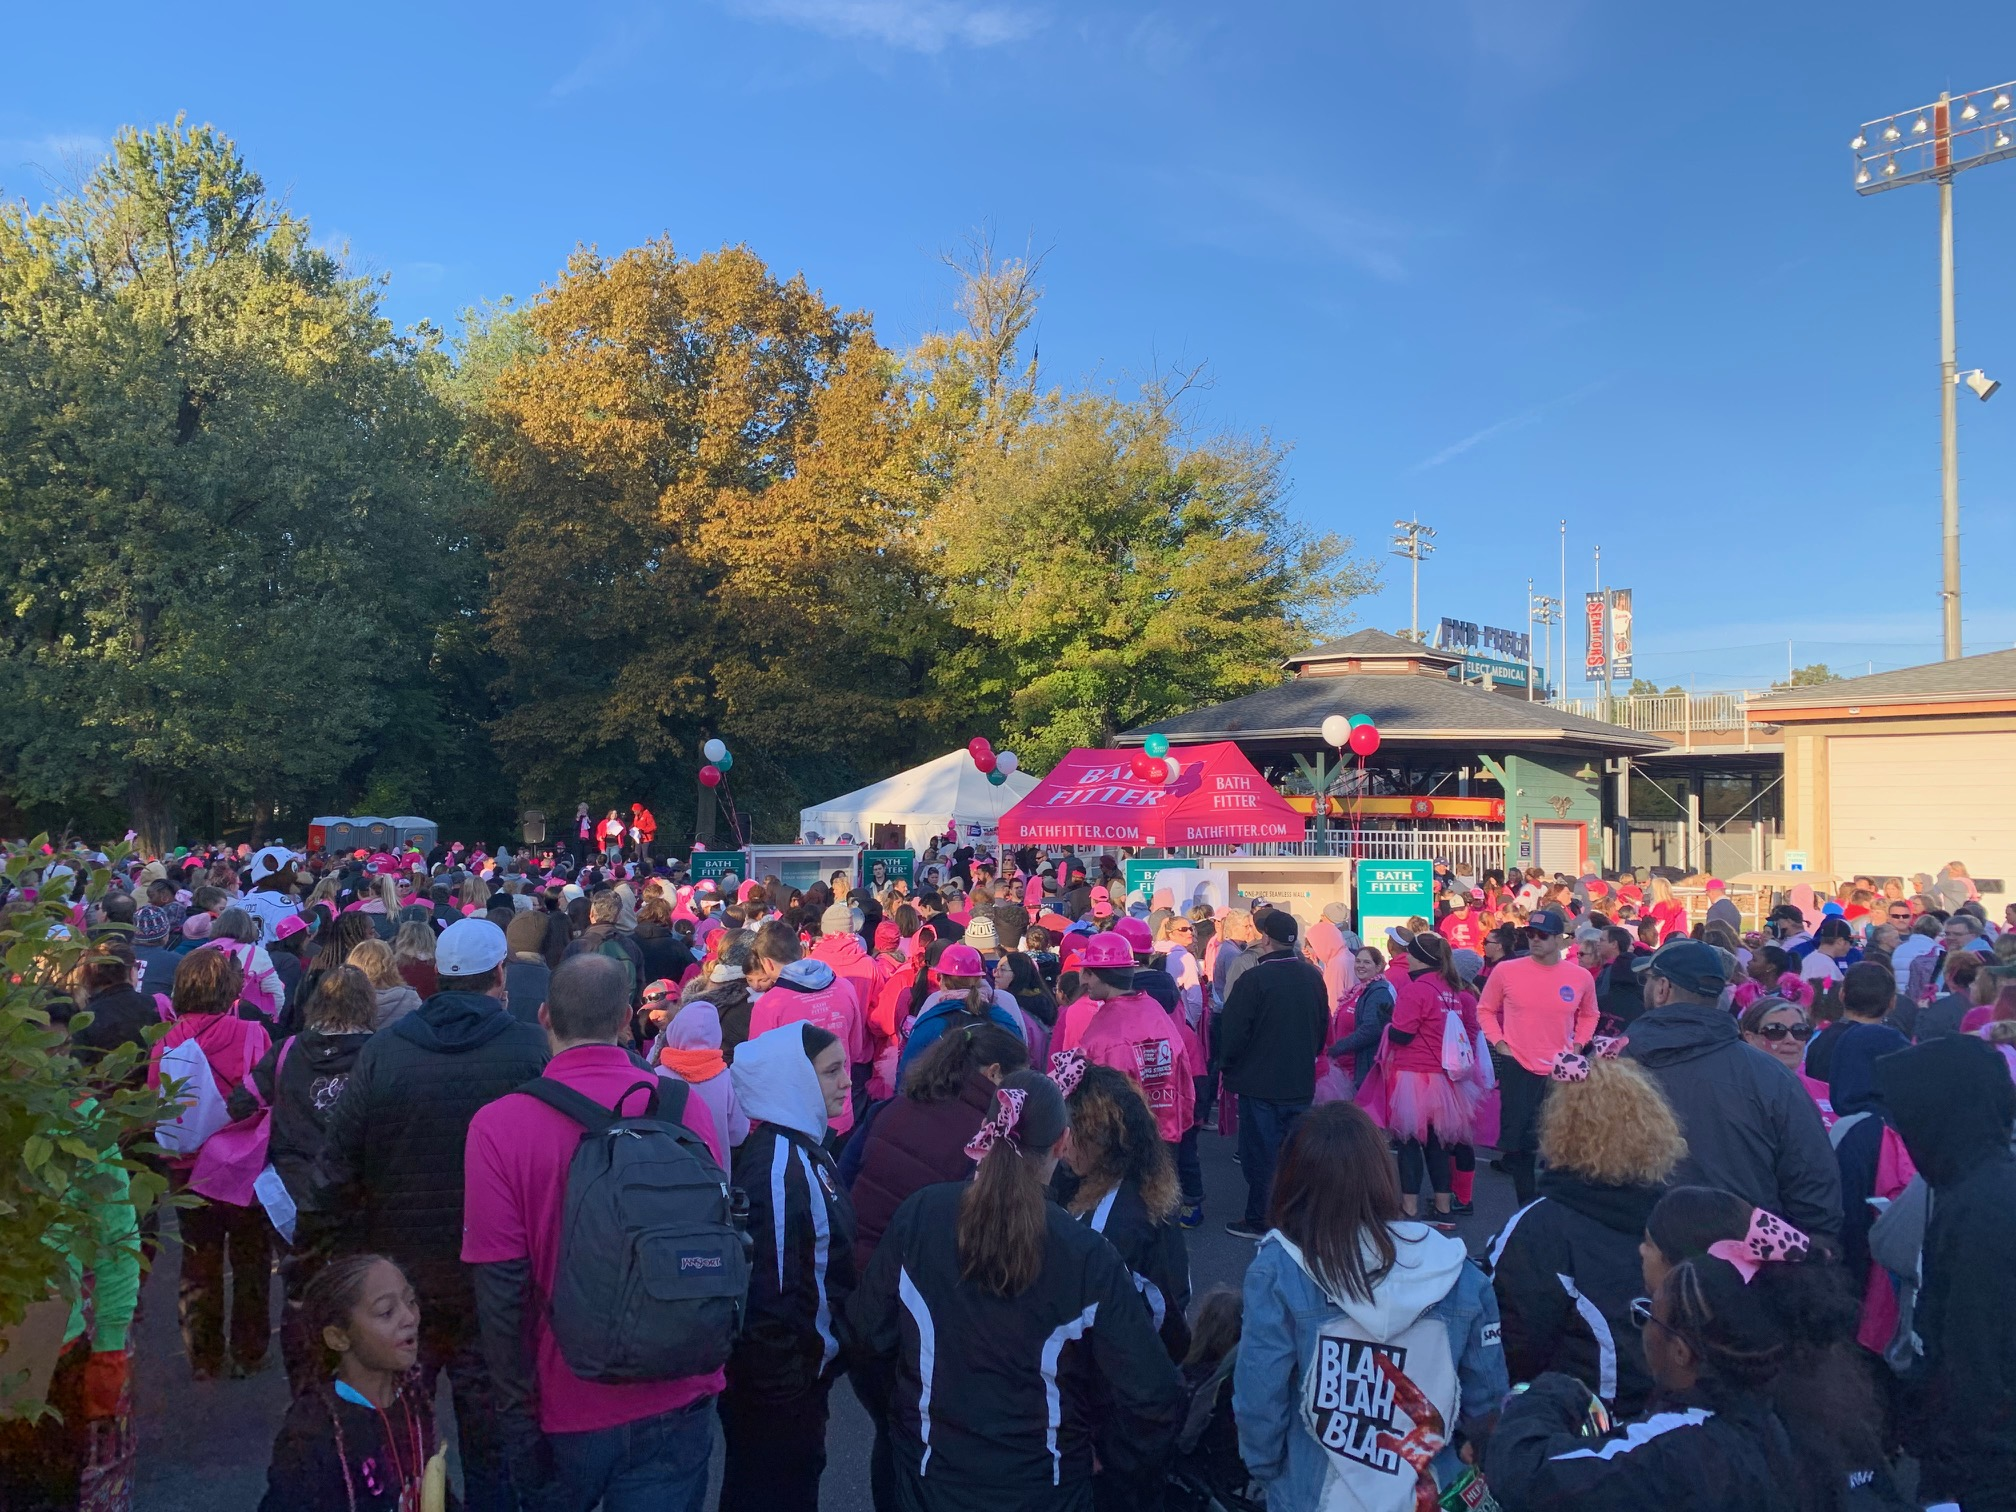 The Sea of Breast Cancer Warriors & Survivors